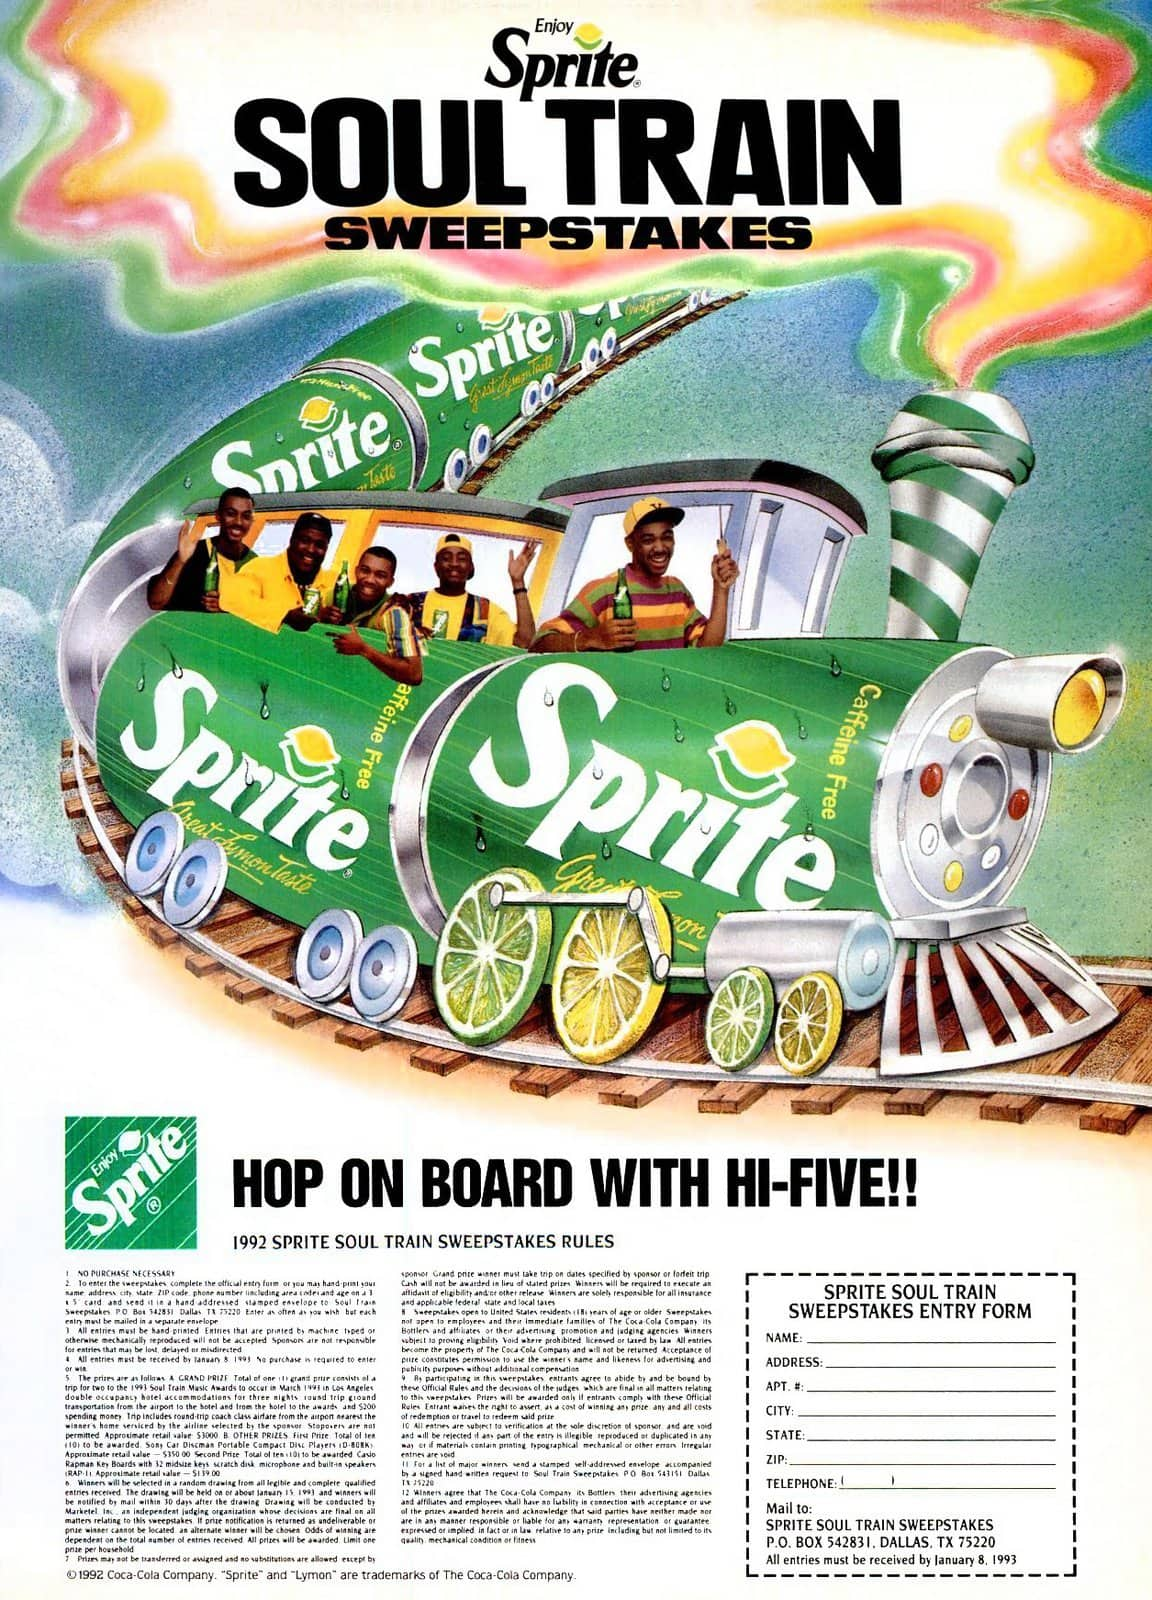 Sprite Soul Train sweepstakes (1992)